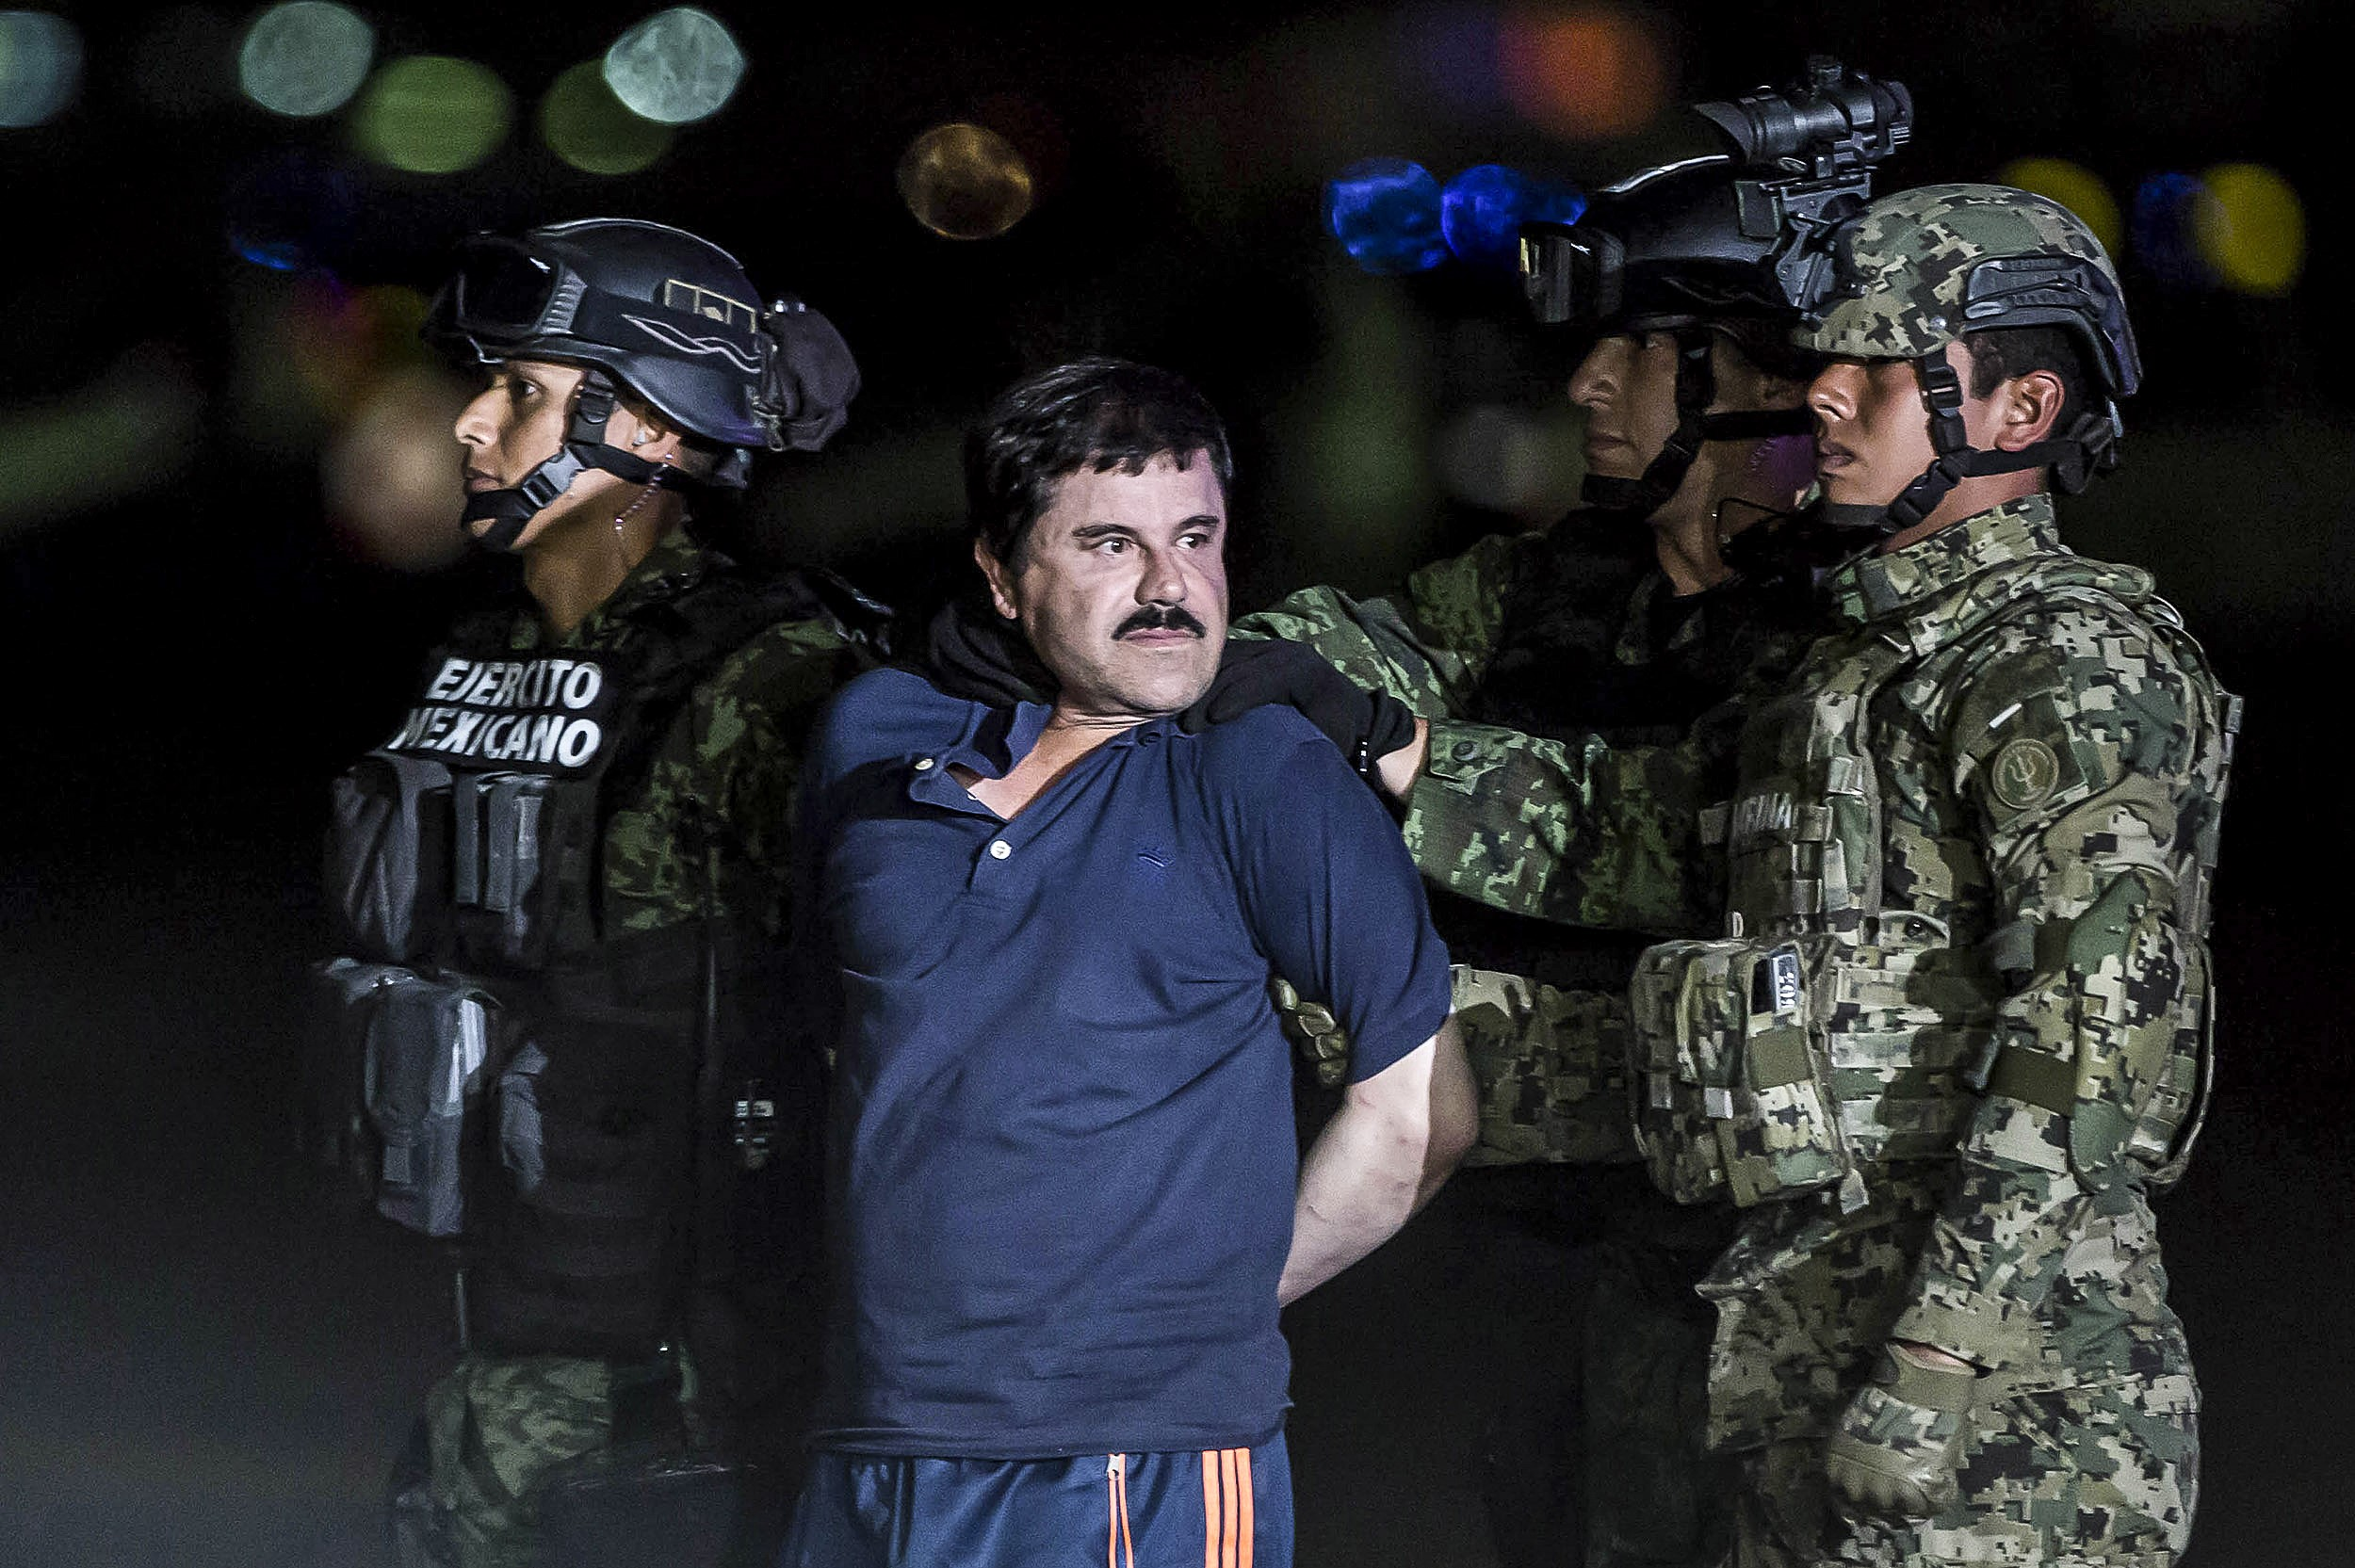 Joaquin Guzman Loera, also known as  El Chapo  is transported to Maximum Security Prison of El Altiplano in Mexico City, Mexico on January 08, 2016.